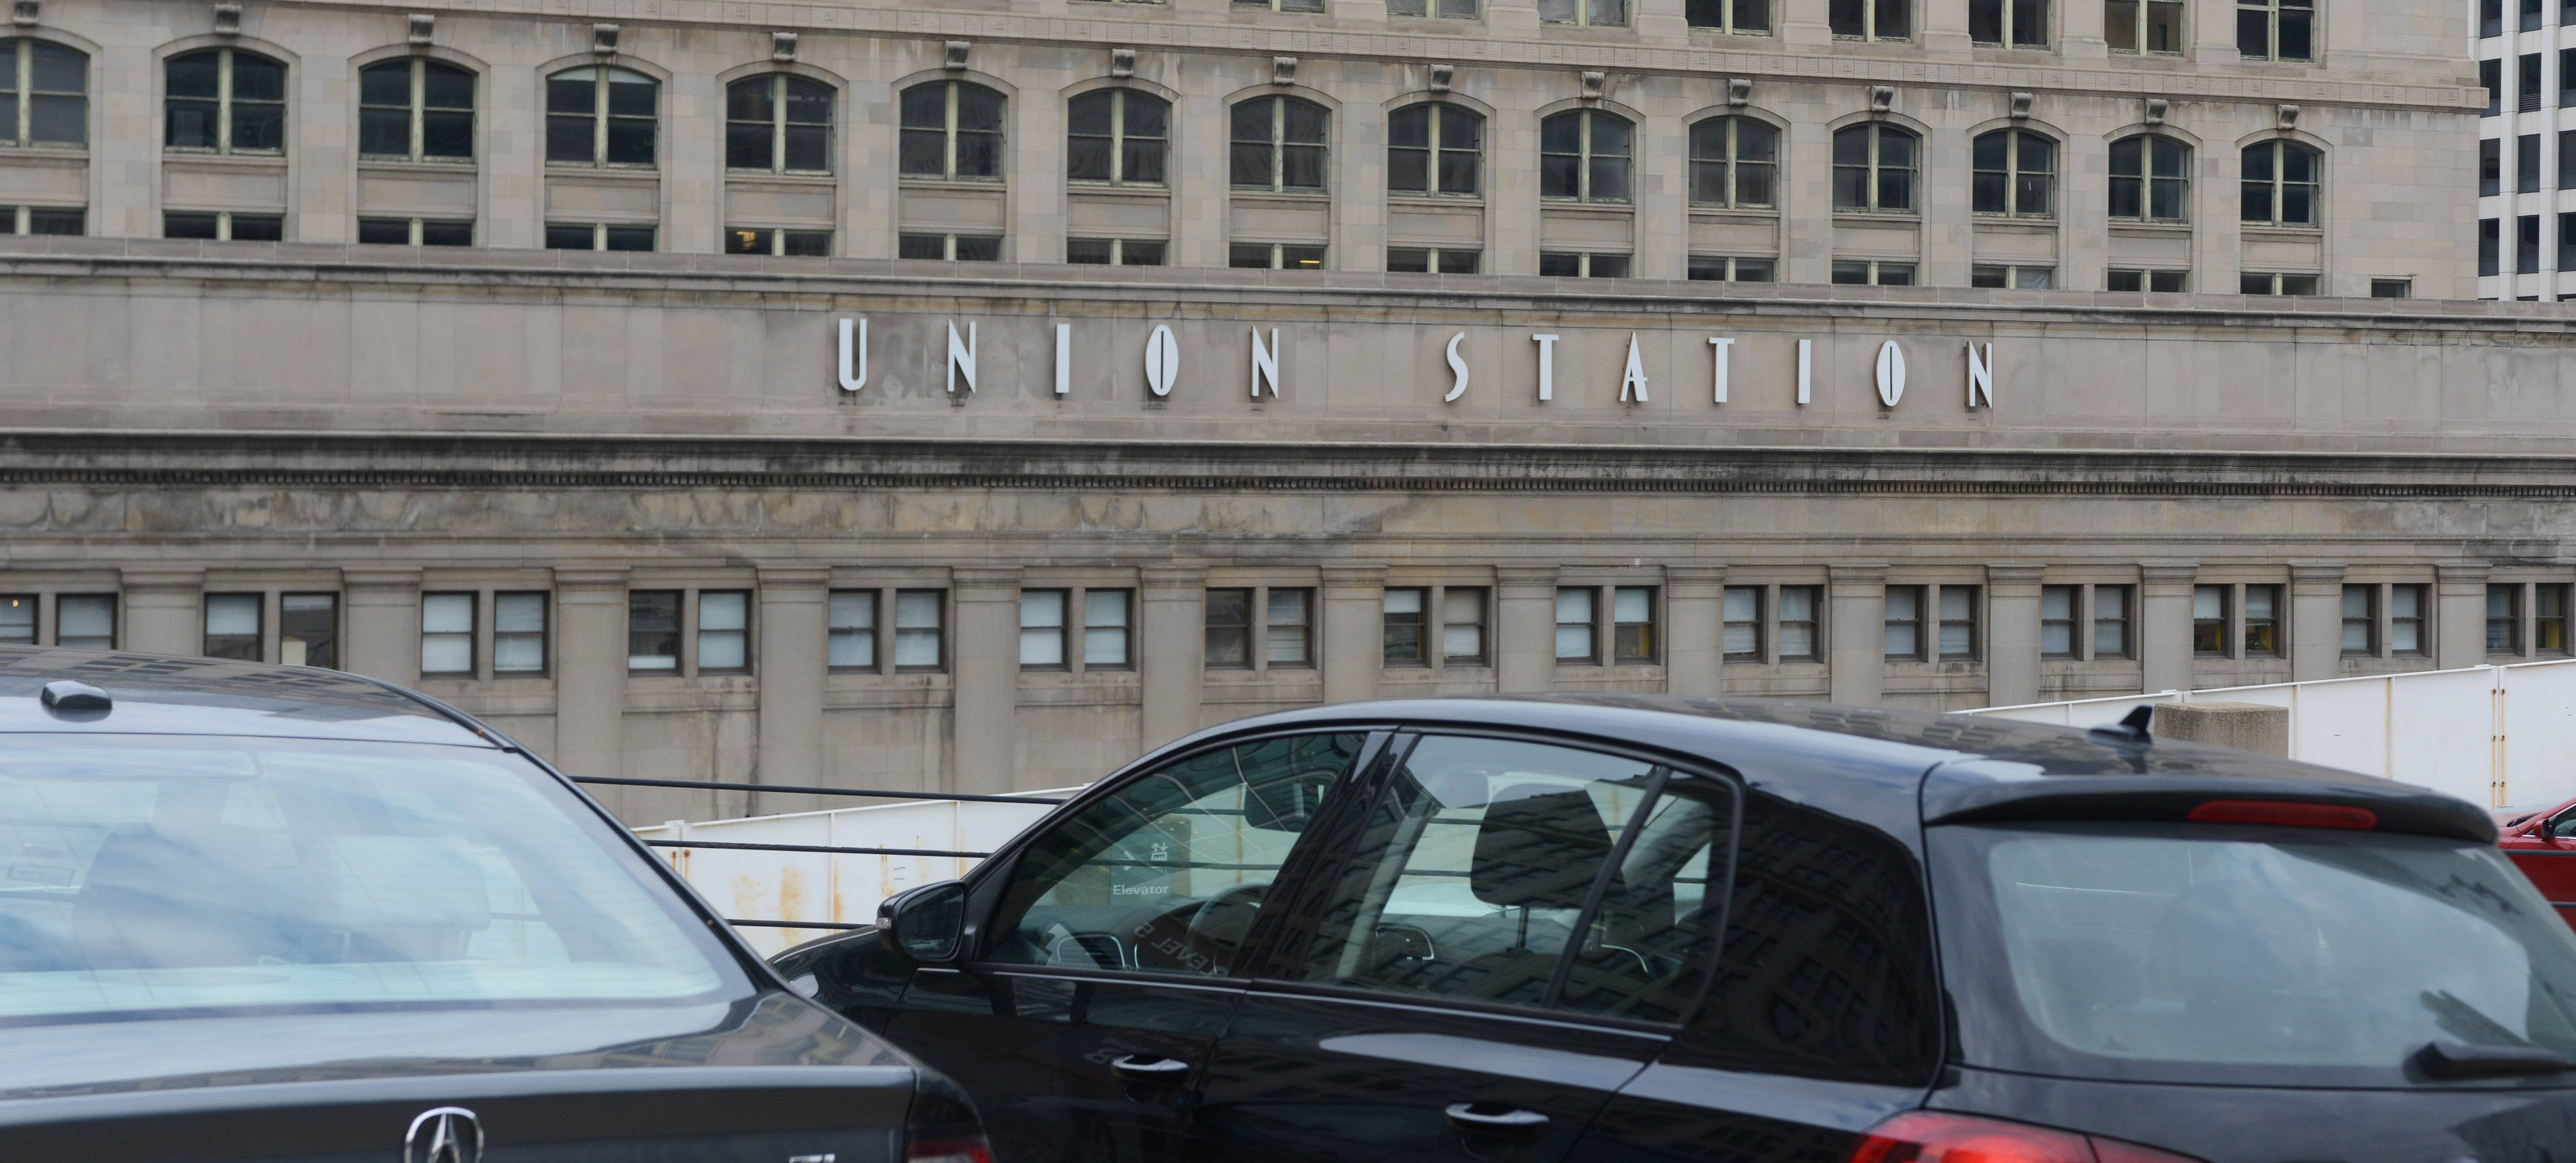 Improvements are coming to Union Station with help from a federal loan program.